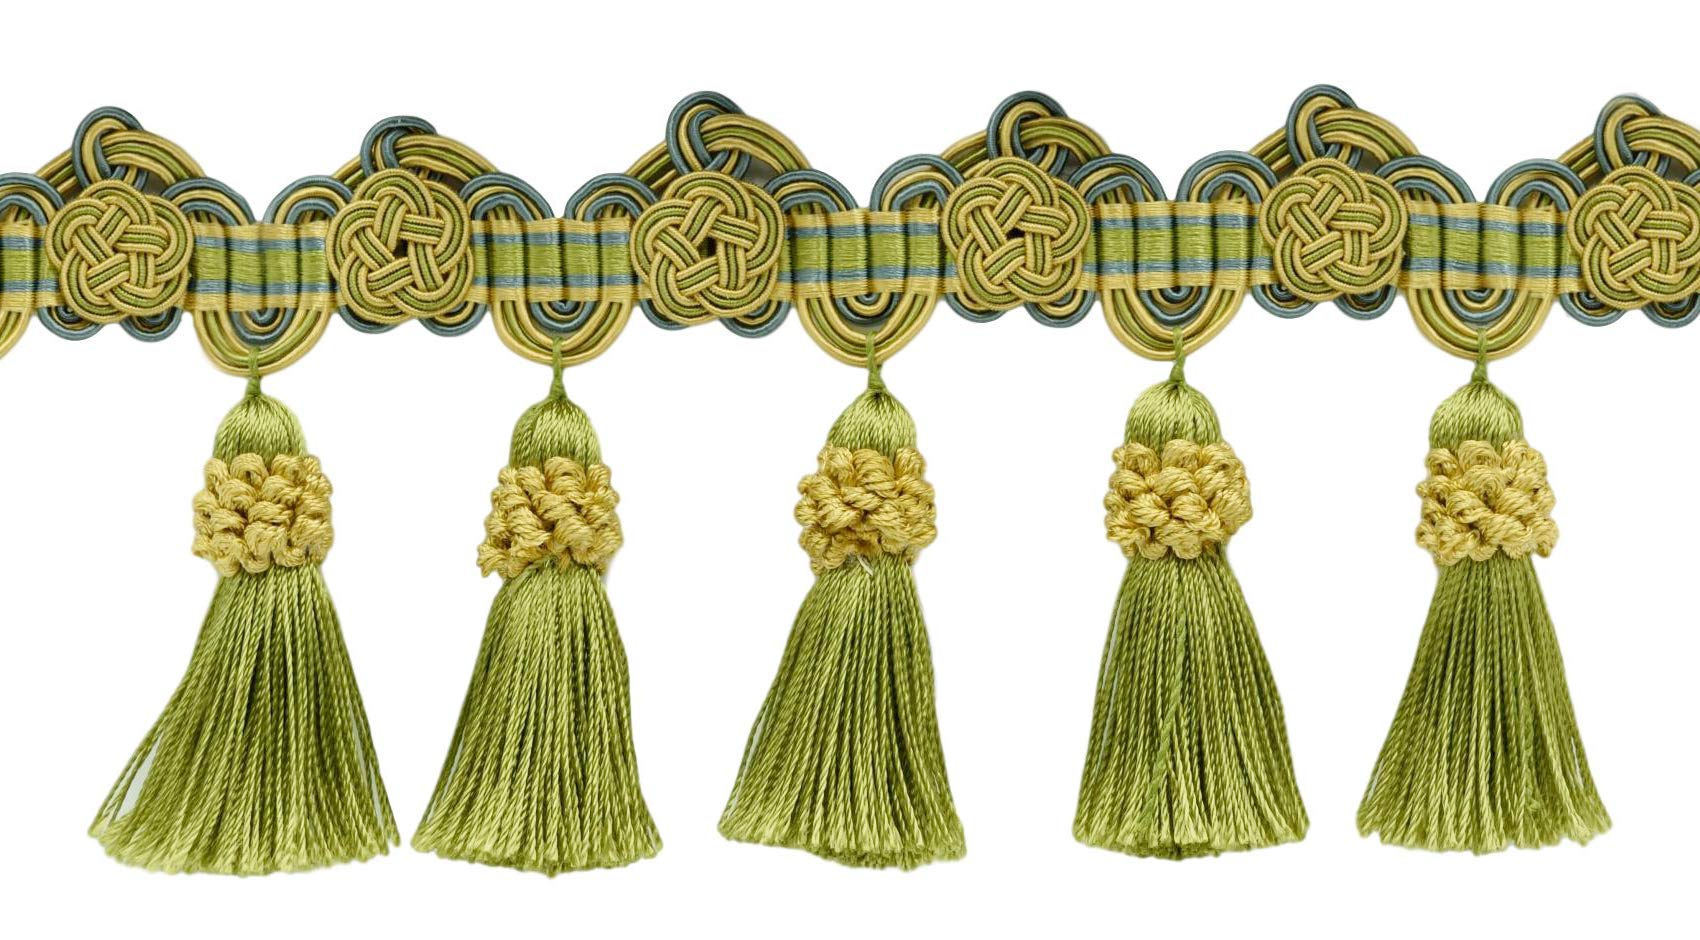 DÉCOPRO 12 Yard Package of 3.75 Inch Gold, Green, Blue Tassel Fringe Trim with Rosettes|Style# TFAX0375 (21765)|Color: Mermaid - LX04 (36 Ft / 11 Meters) by DÉCOPRO